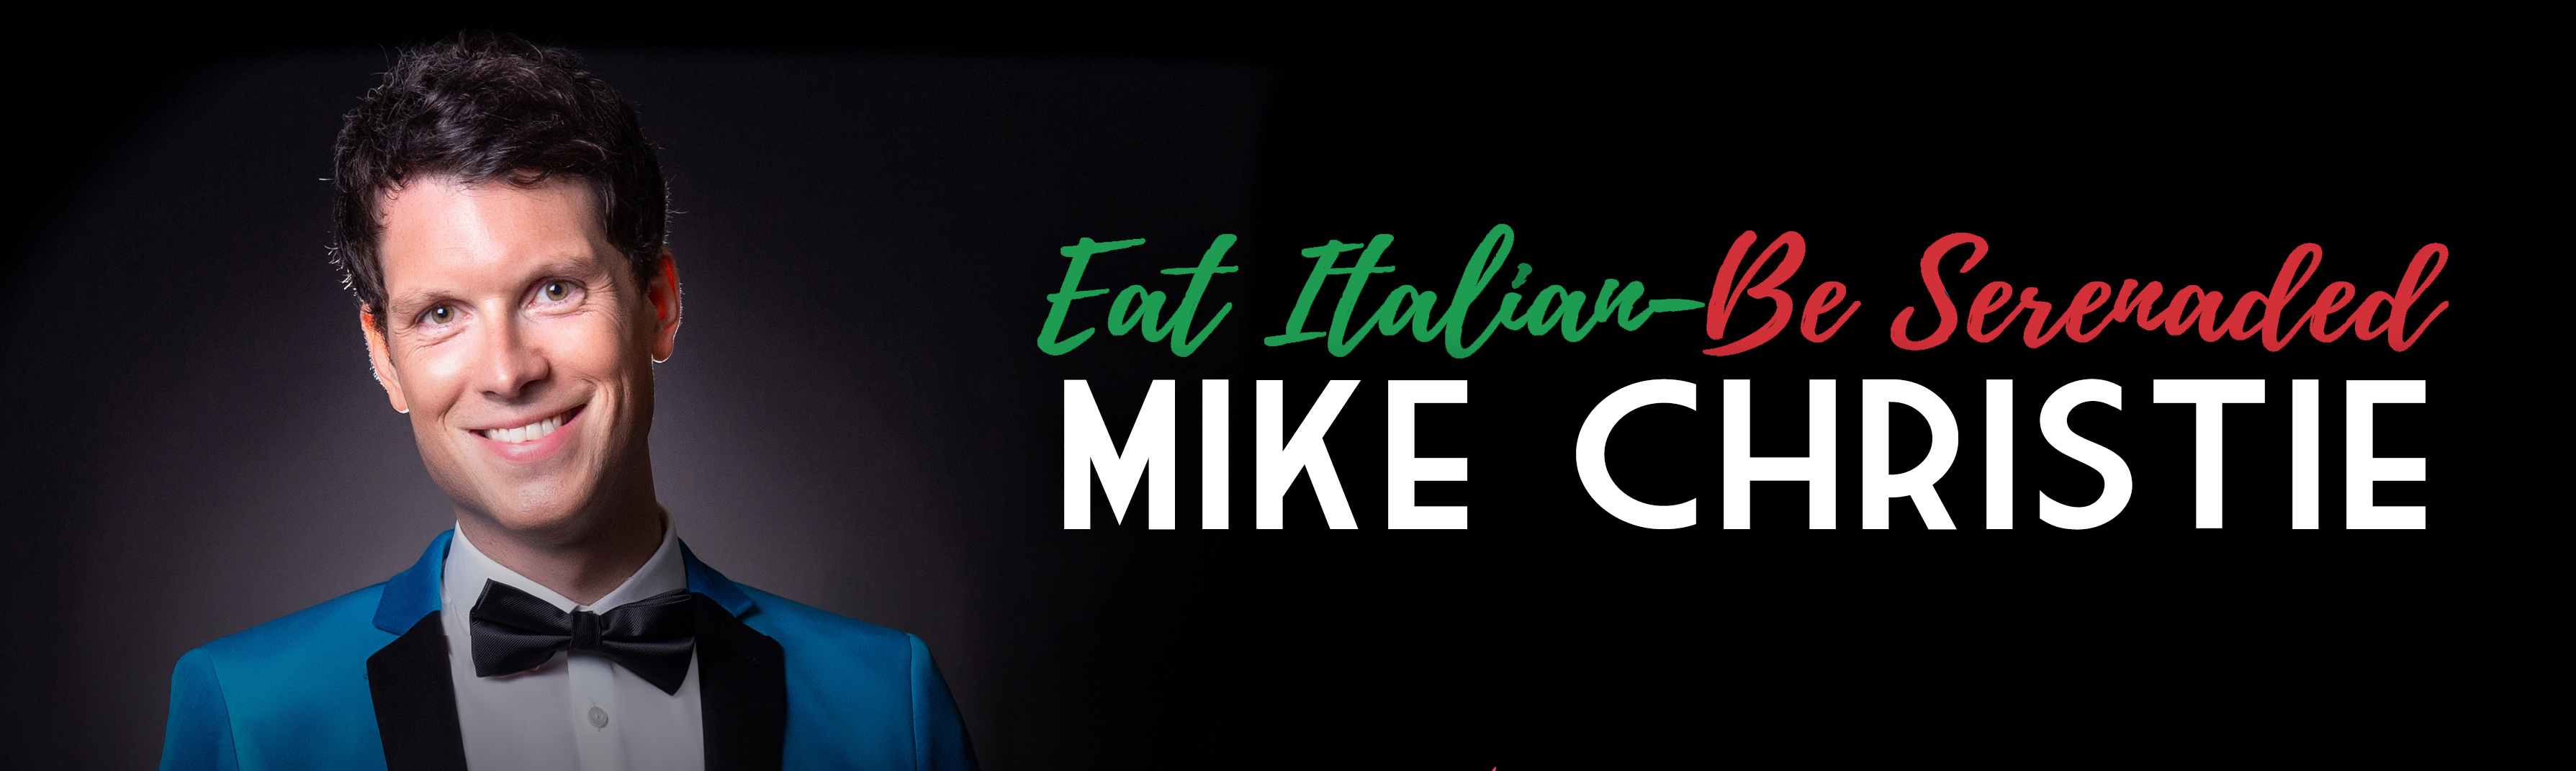 Tickets for Mike Christie 'Eat Italian-Be Serenaded' Yorkshire in Wetherby from Ticketbooth Europe